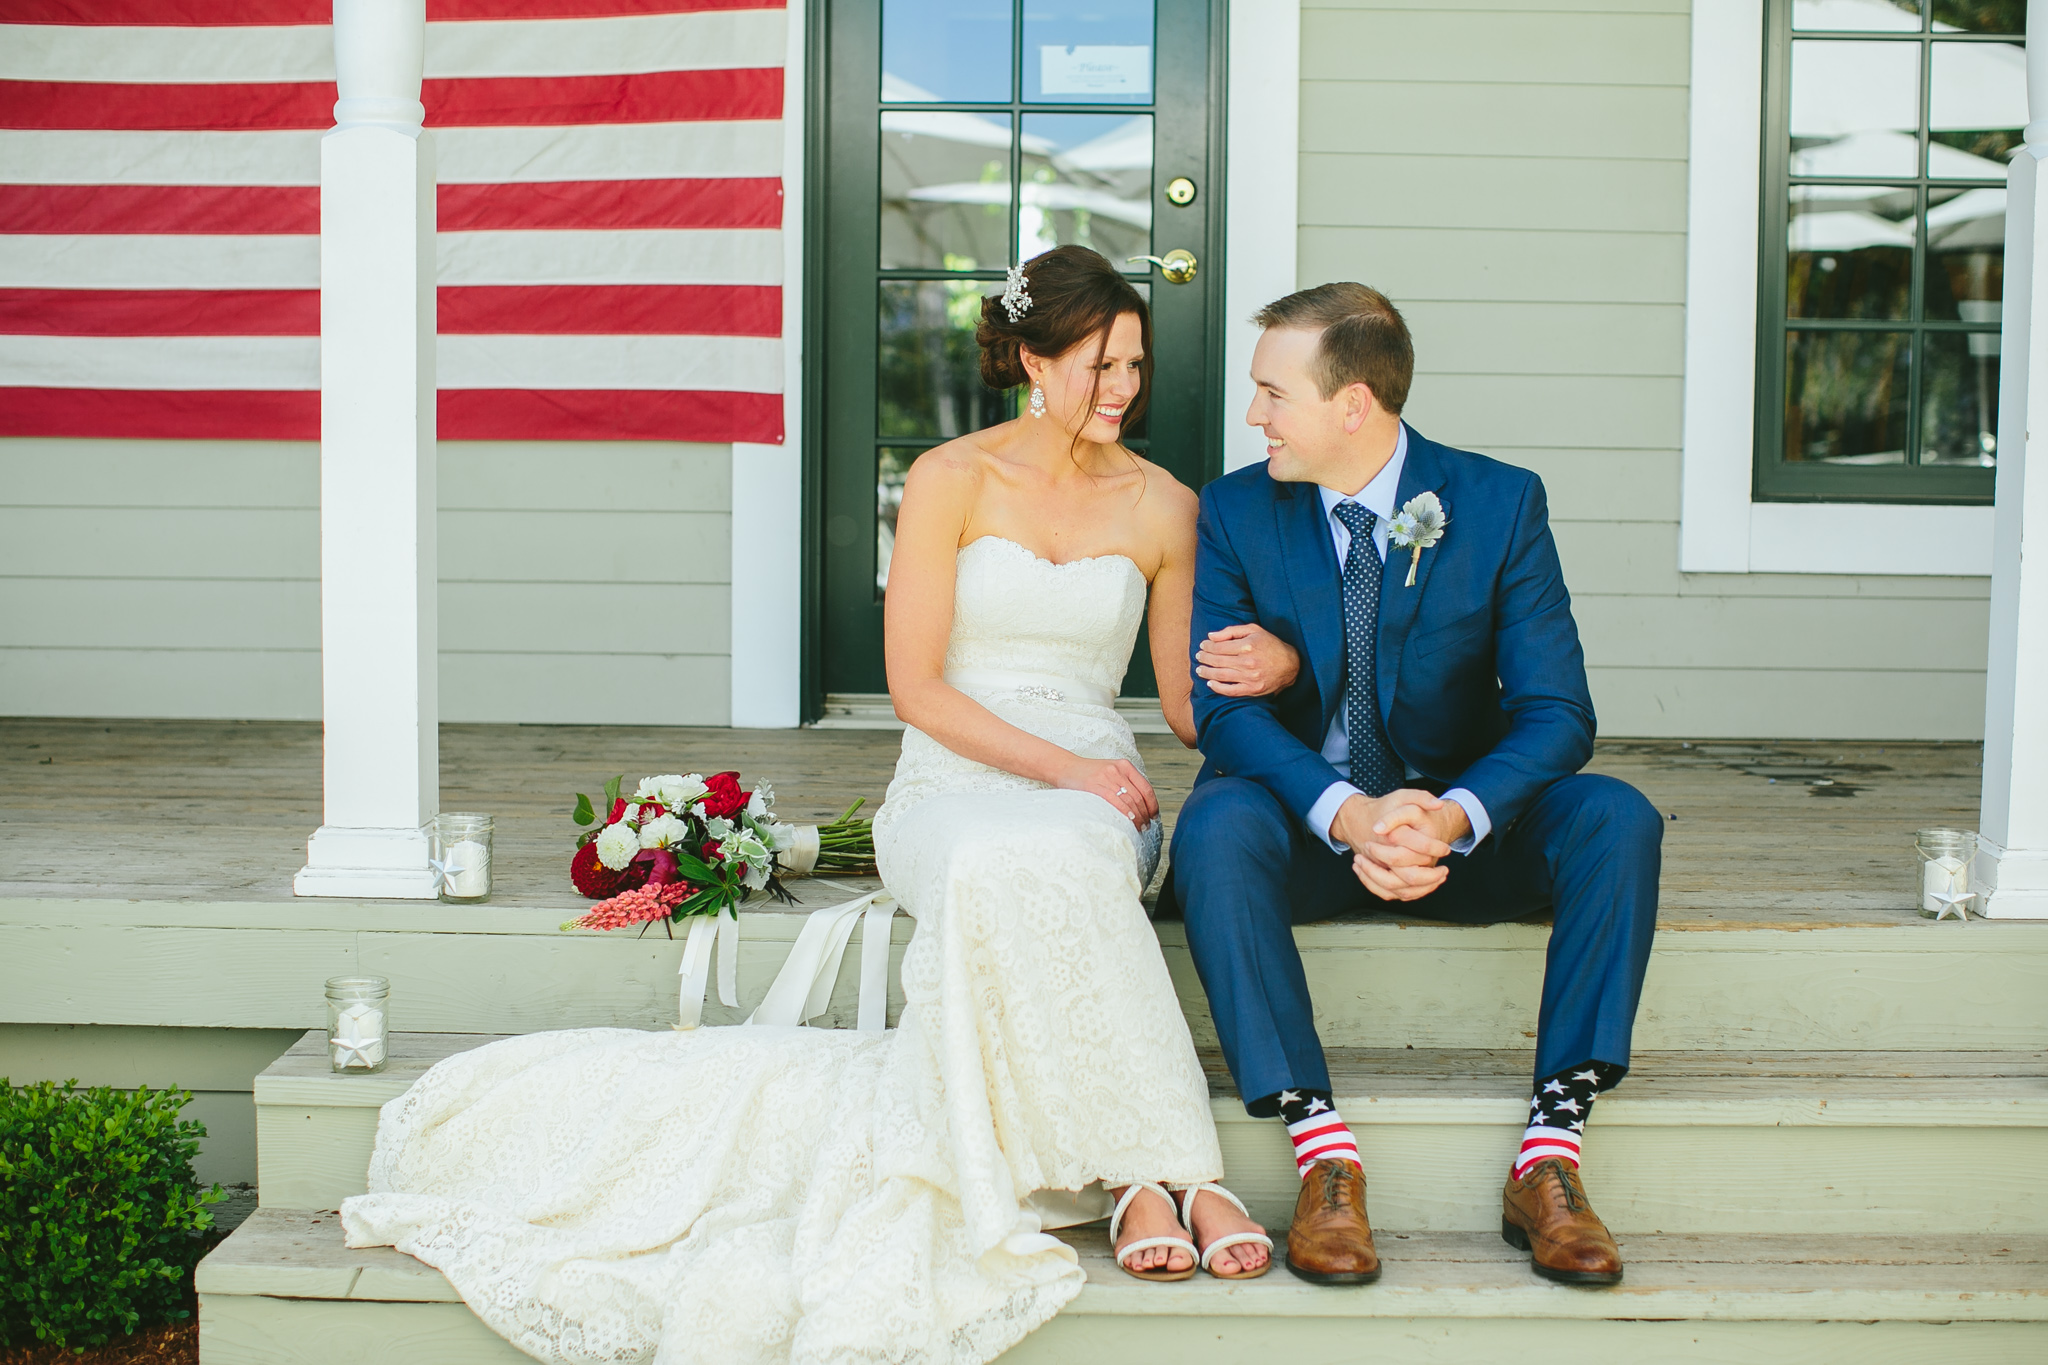 Kate+Taylor-BLOG-WED_KellyBoitano-44